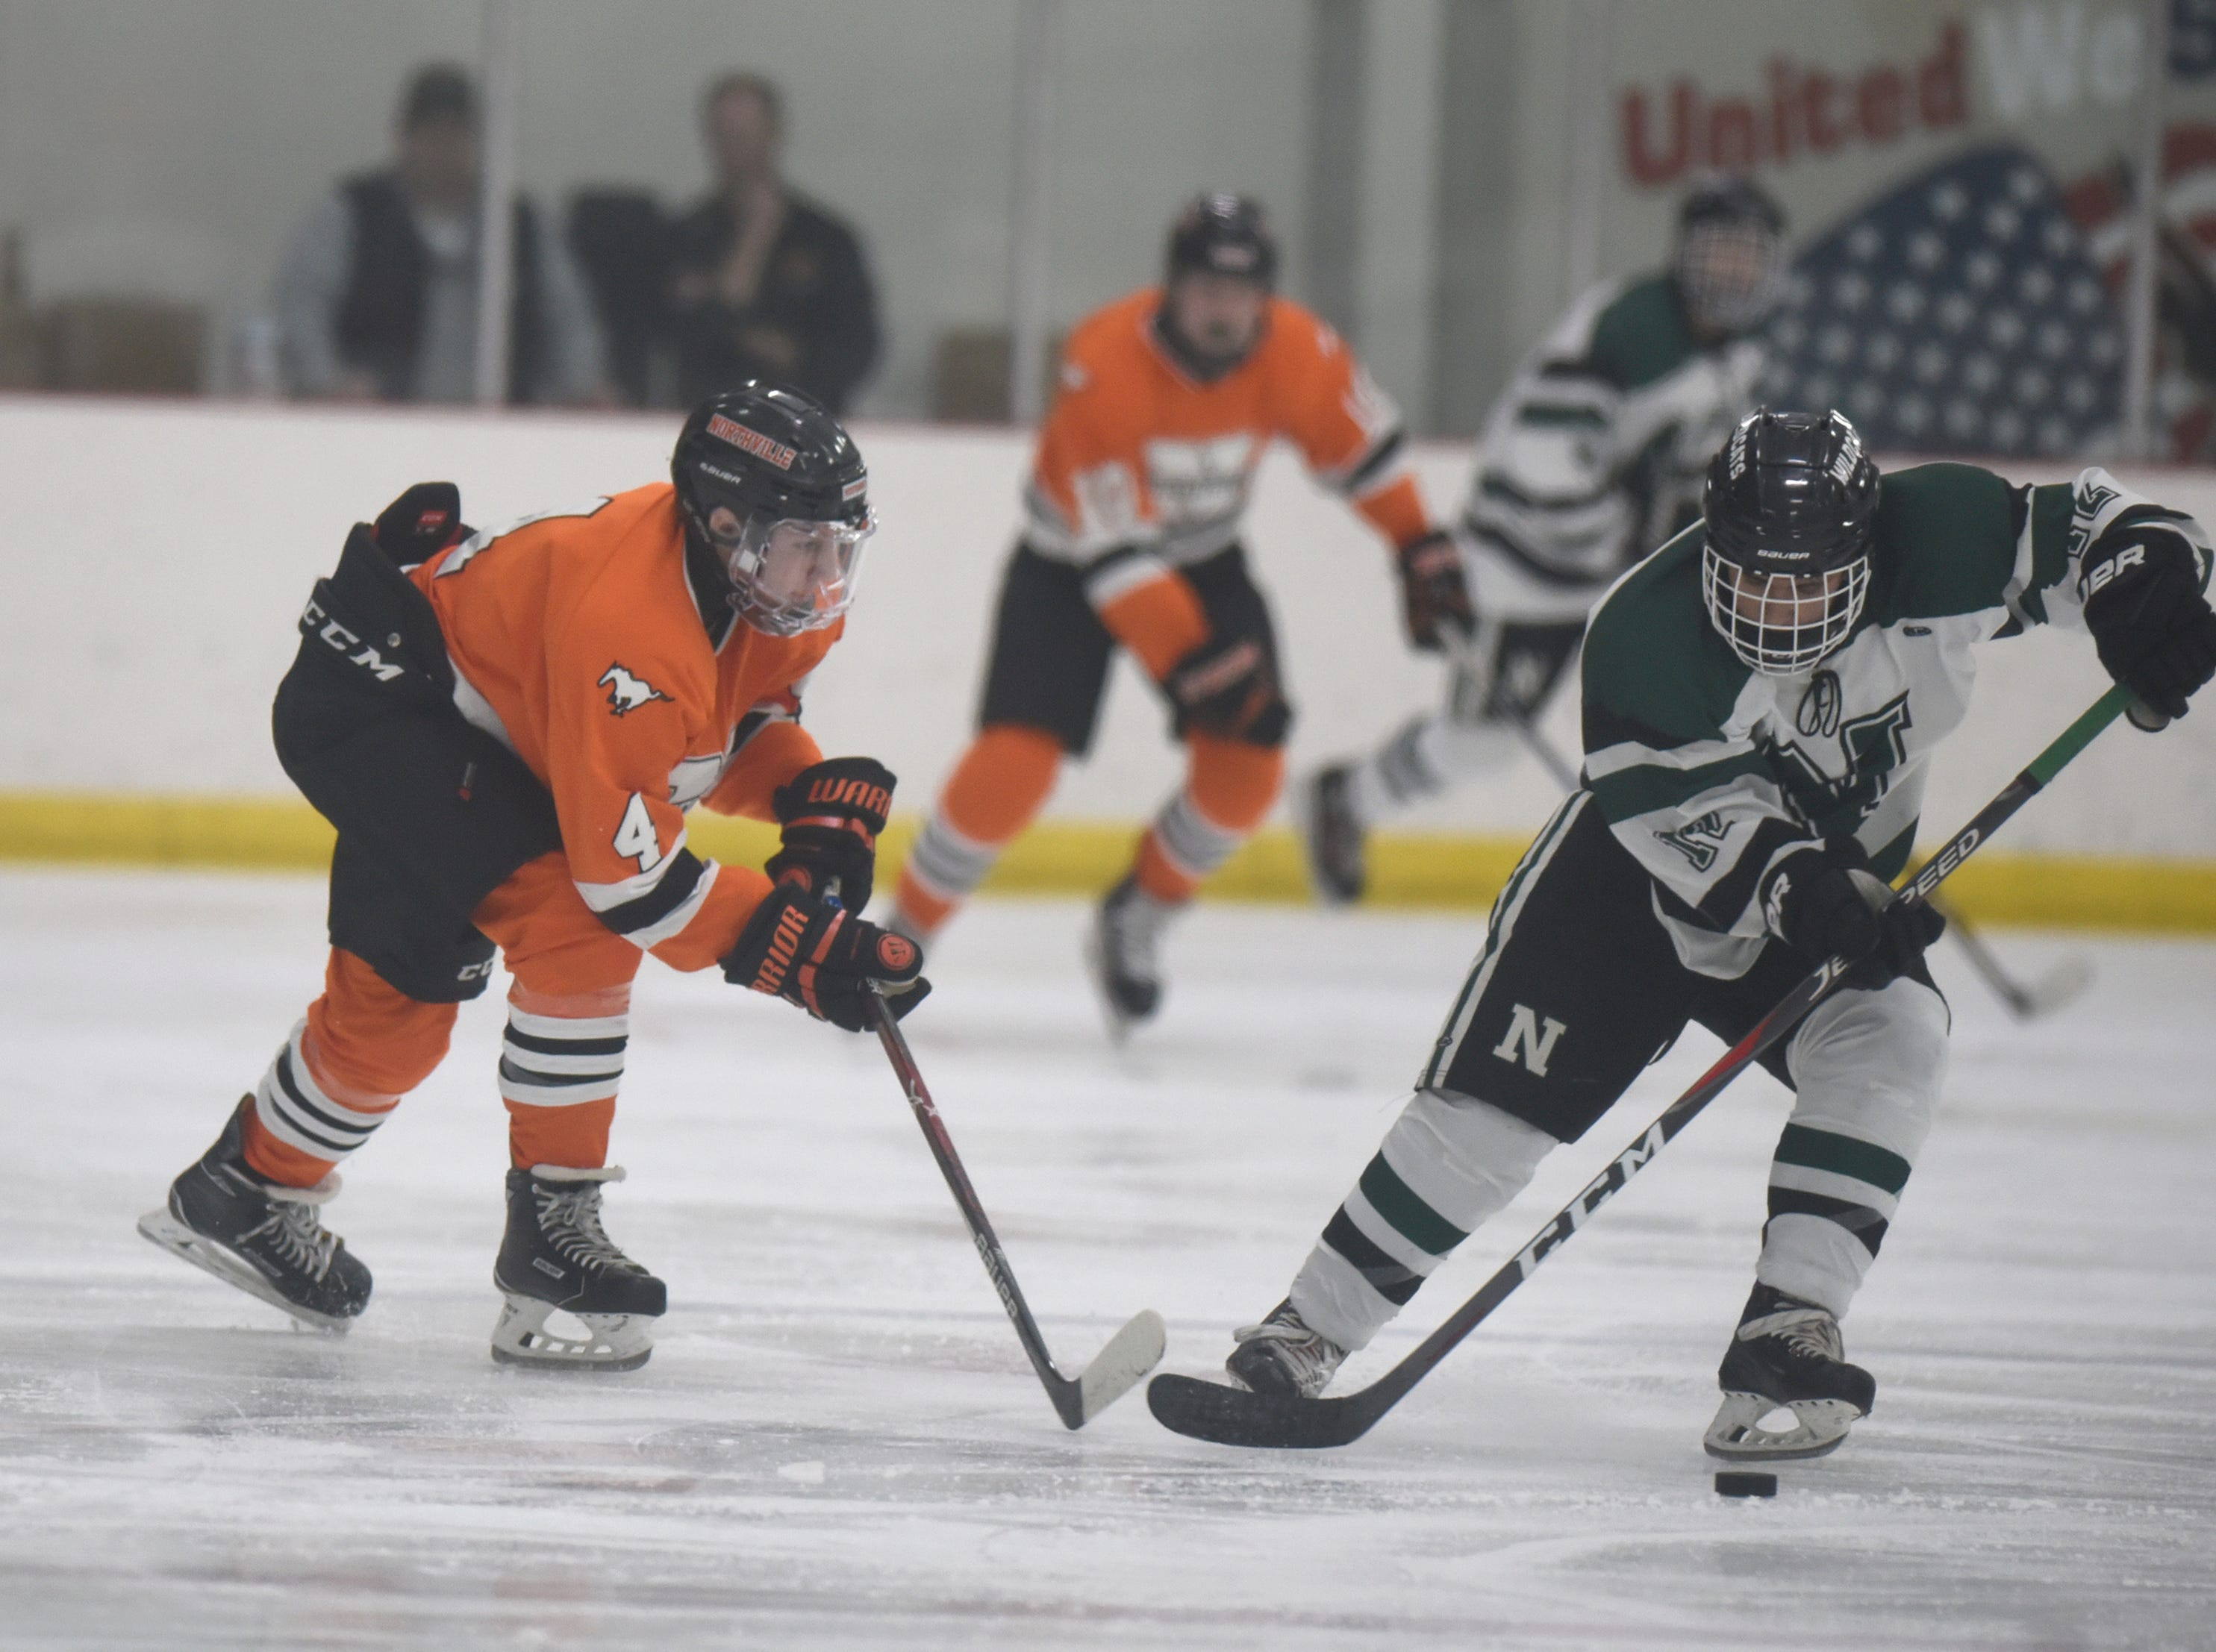 Northville defenseman Chris Bogenhagen (4) and Novi forward Maanas Sharma (12) during a KLAA West match up between rivals Novi and Northville played at Novi Ice Arena Nov. 20, 2018.